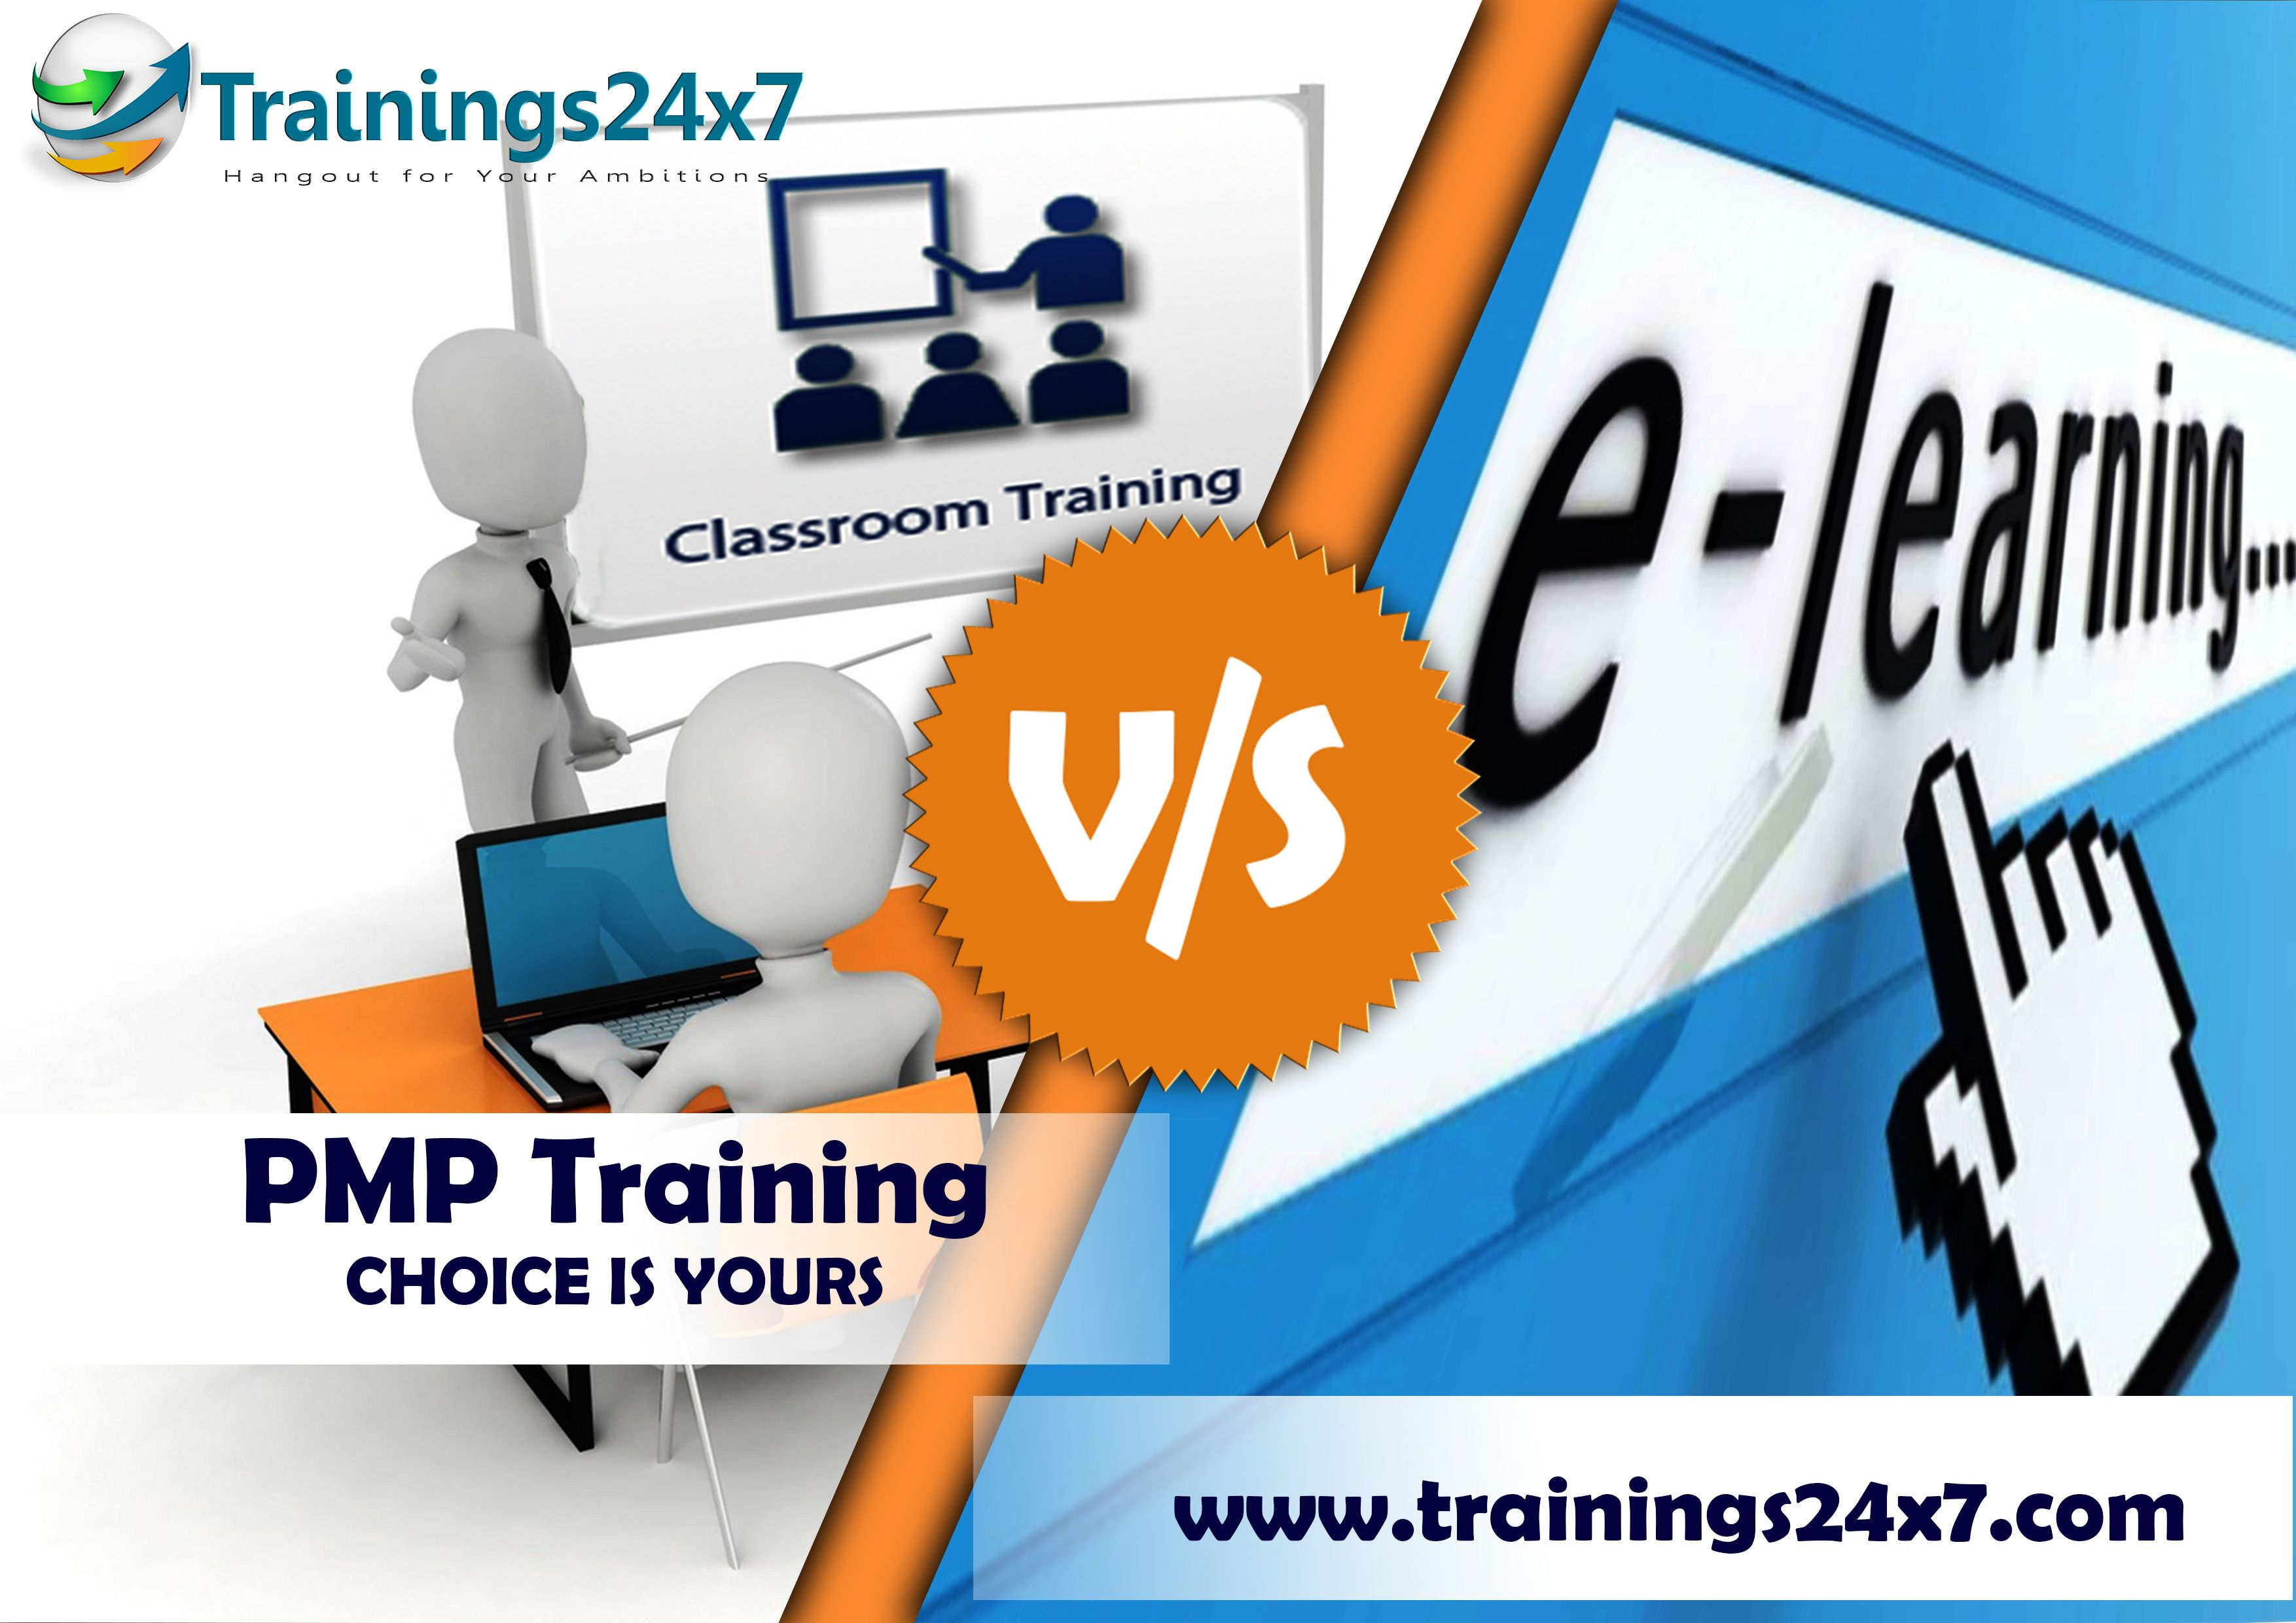 Pmp classroom or e learning training trainings24x7 provide both pmp classroom or e learning training trainings24x7 provide both classroom or e learning training 1betcityfo Images